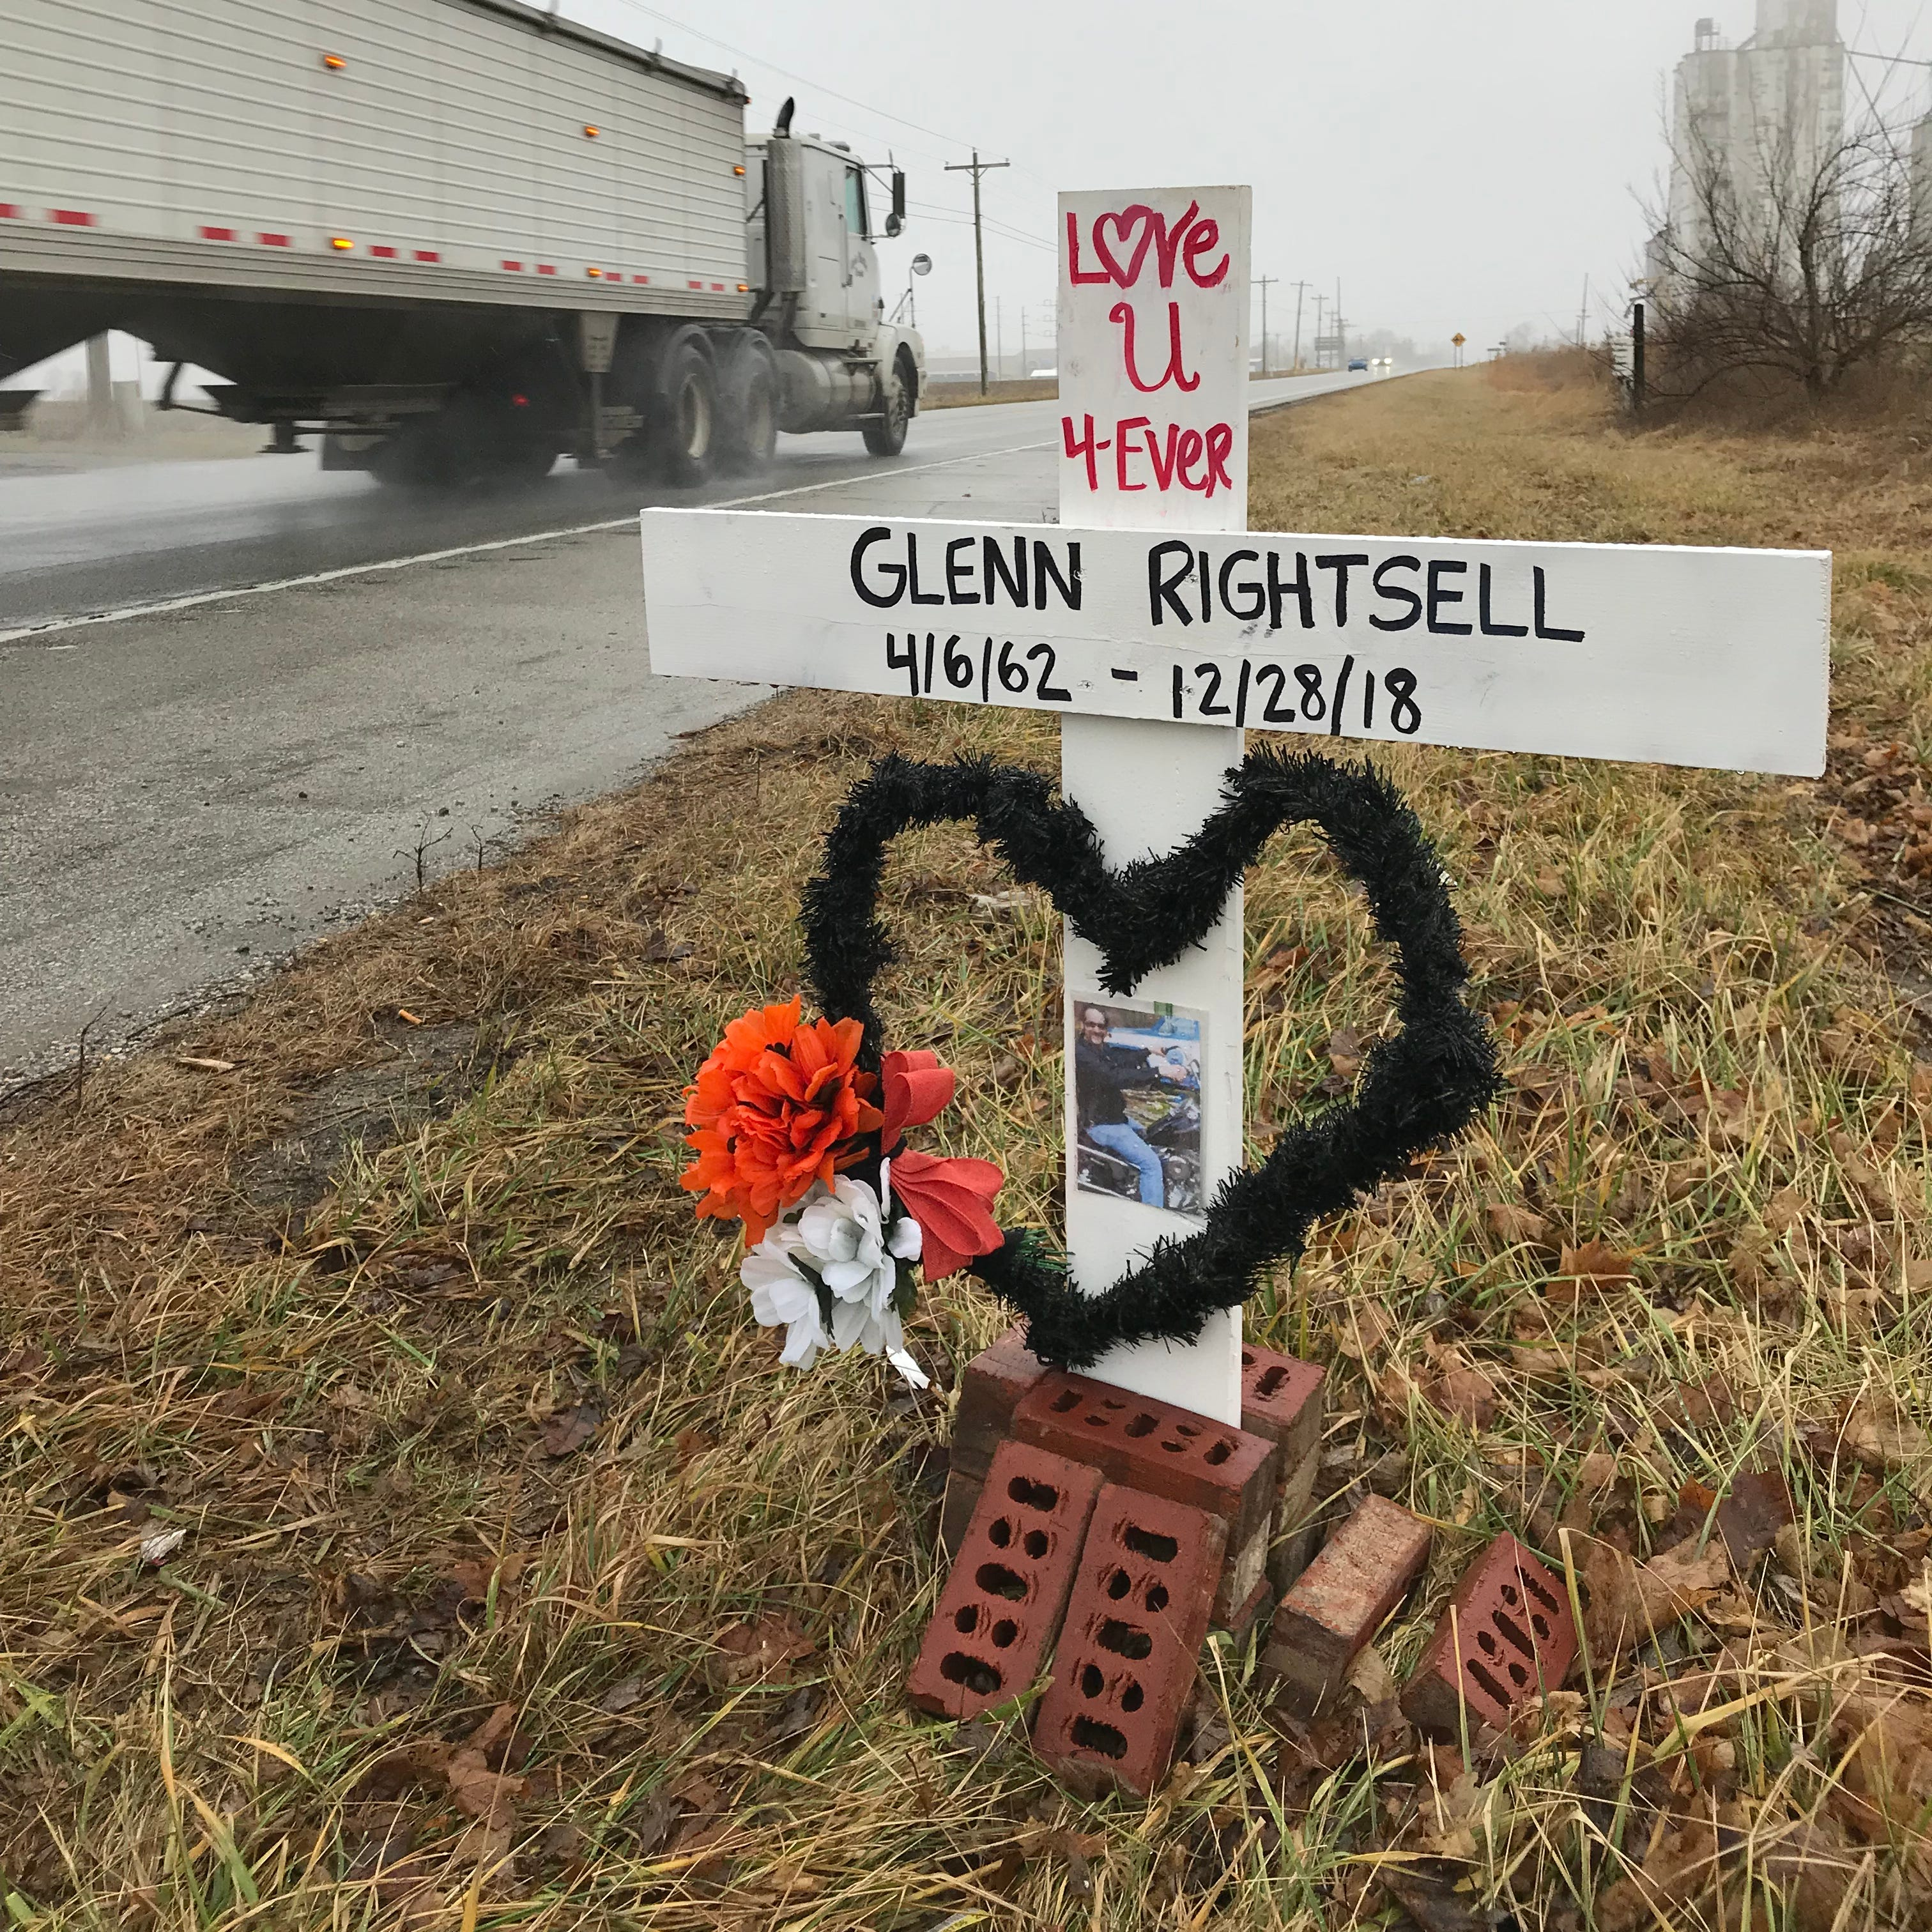 ISP fatal shooting: Police hand investigation to prosecutor in death of Glenn Rightsell